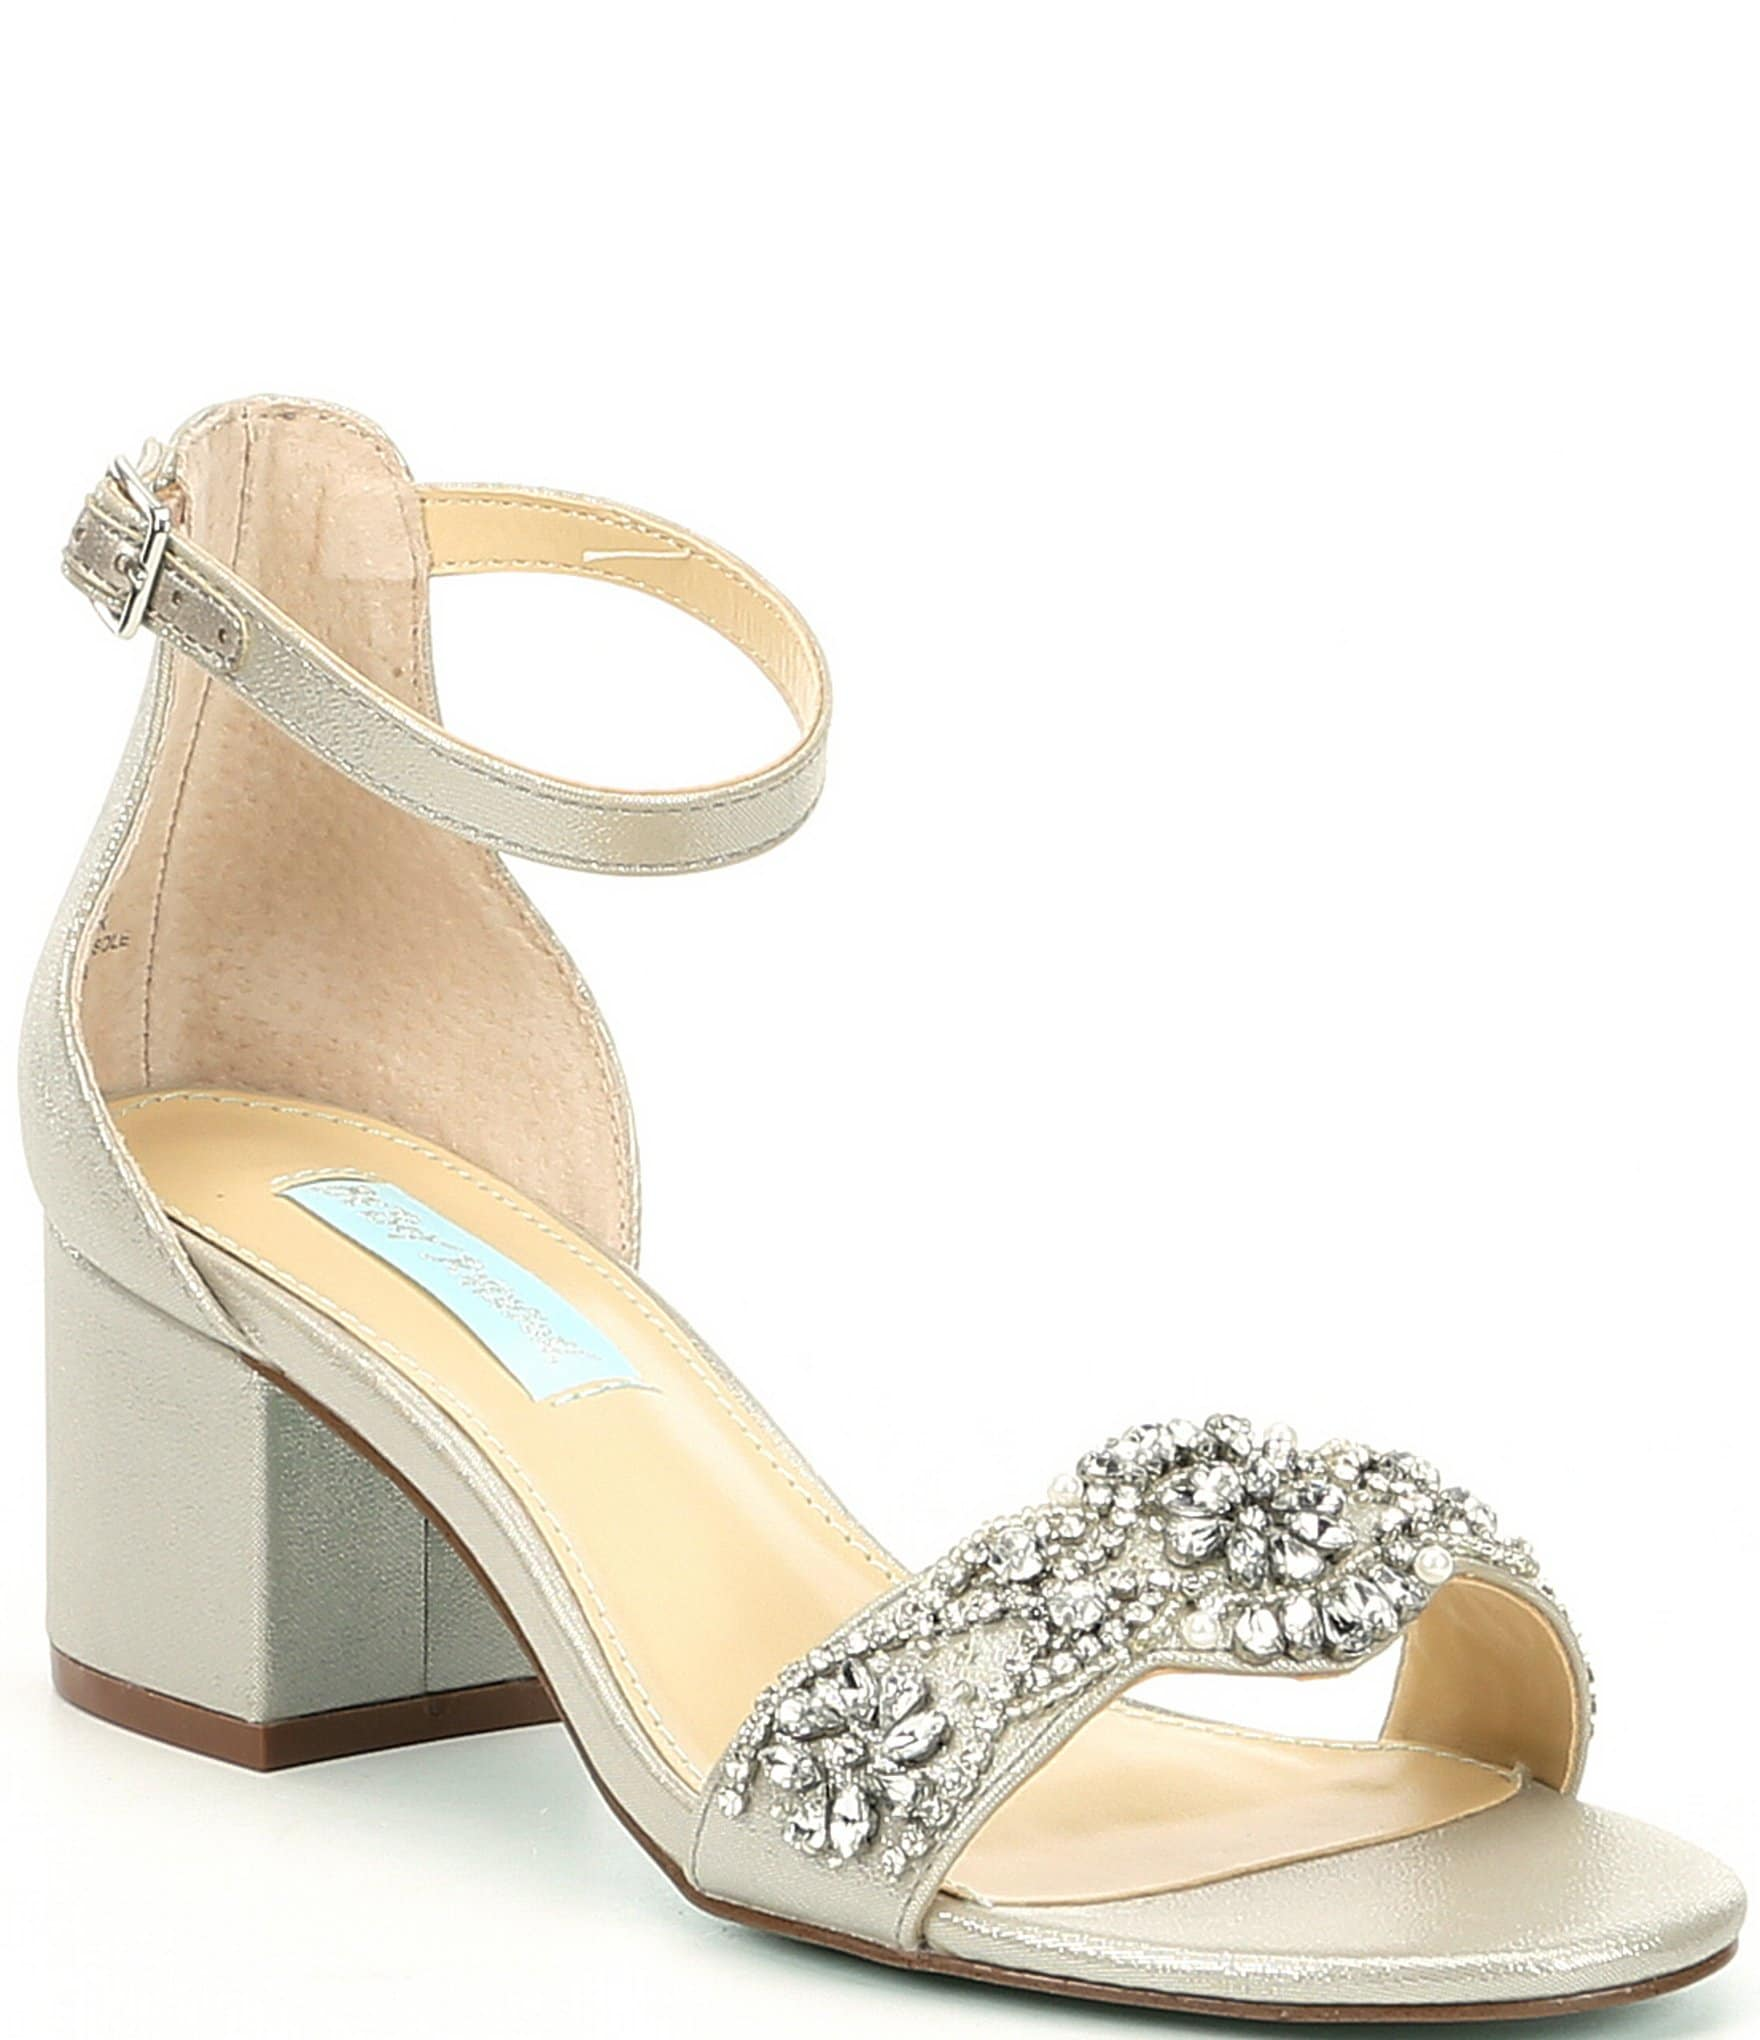 Bridal Shoes Silver: Blue By Betsey Johnson Mel Bejeweled Satin Block Heel